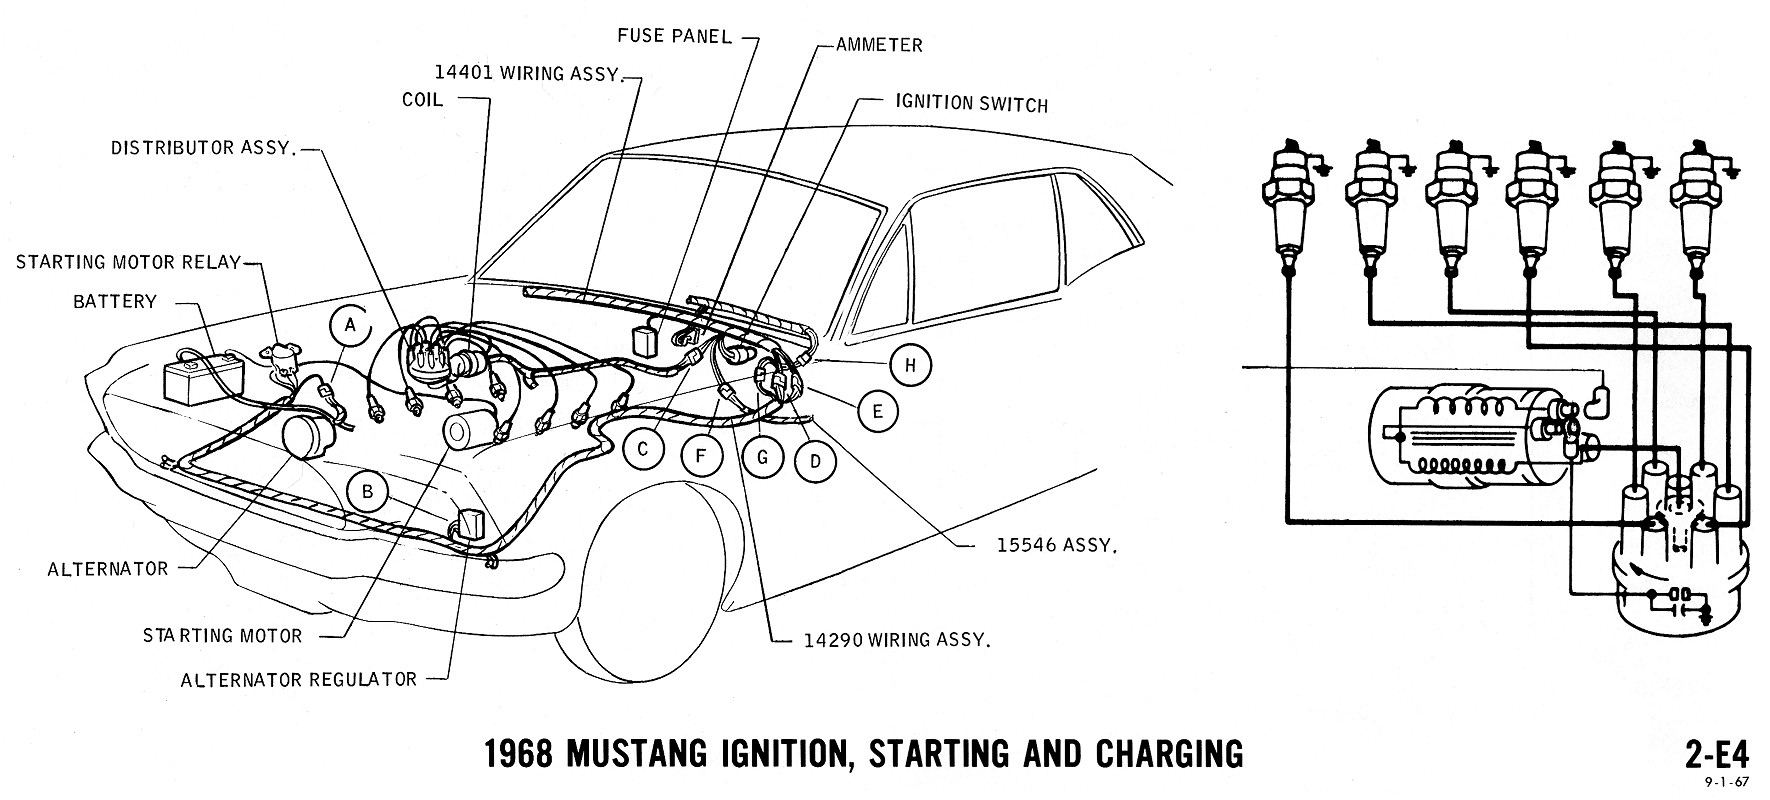 hight resolution of 1968 mustang wiring diagrams and vacuum schematics average joe photo 1967 ford mustang 289 factory distributor wiring 68 ford distributor wiring